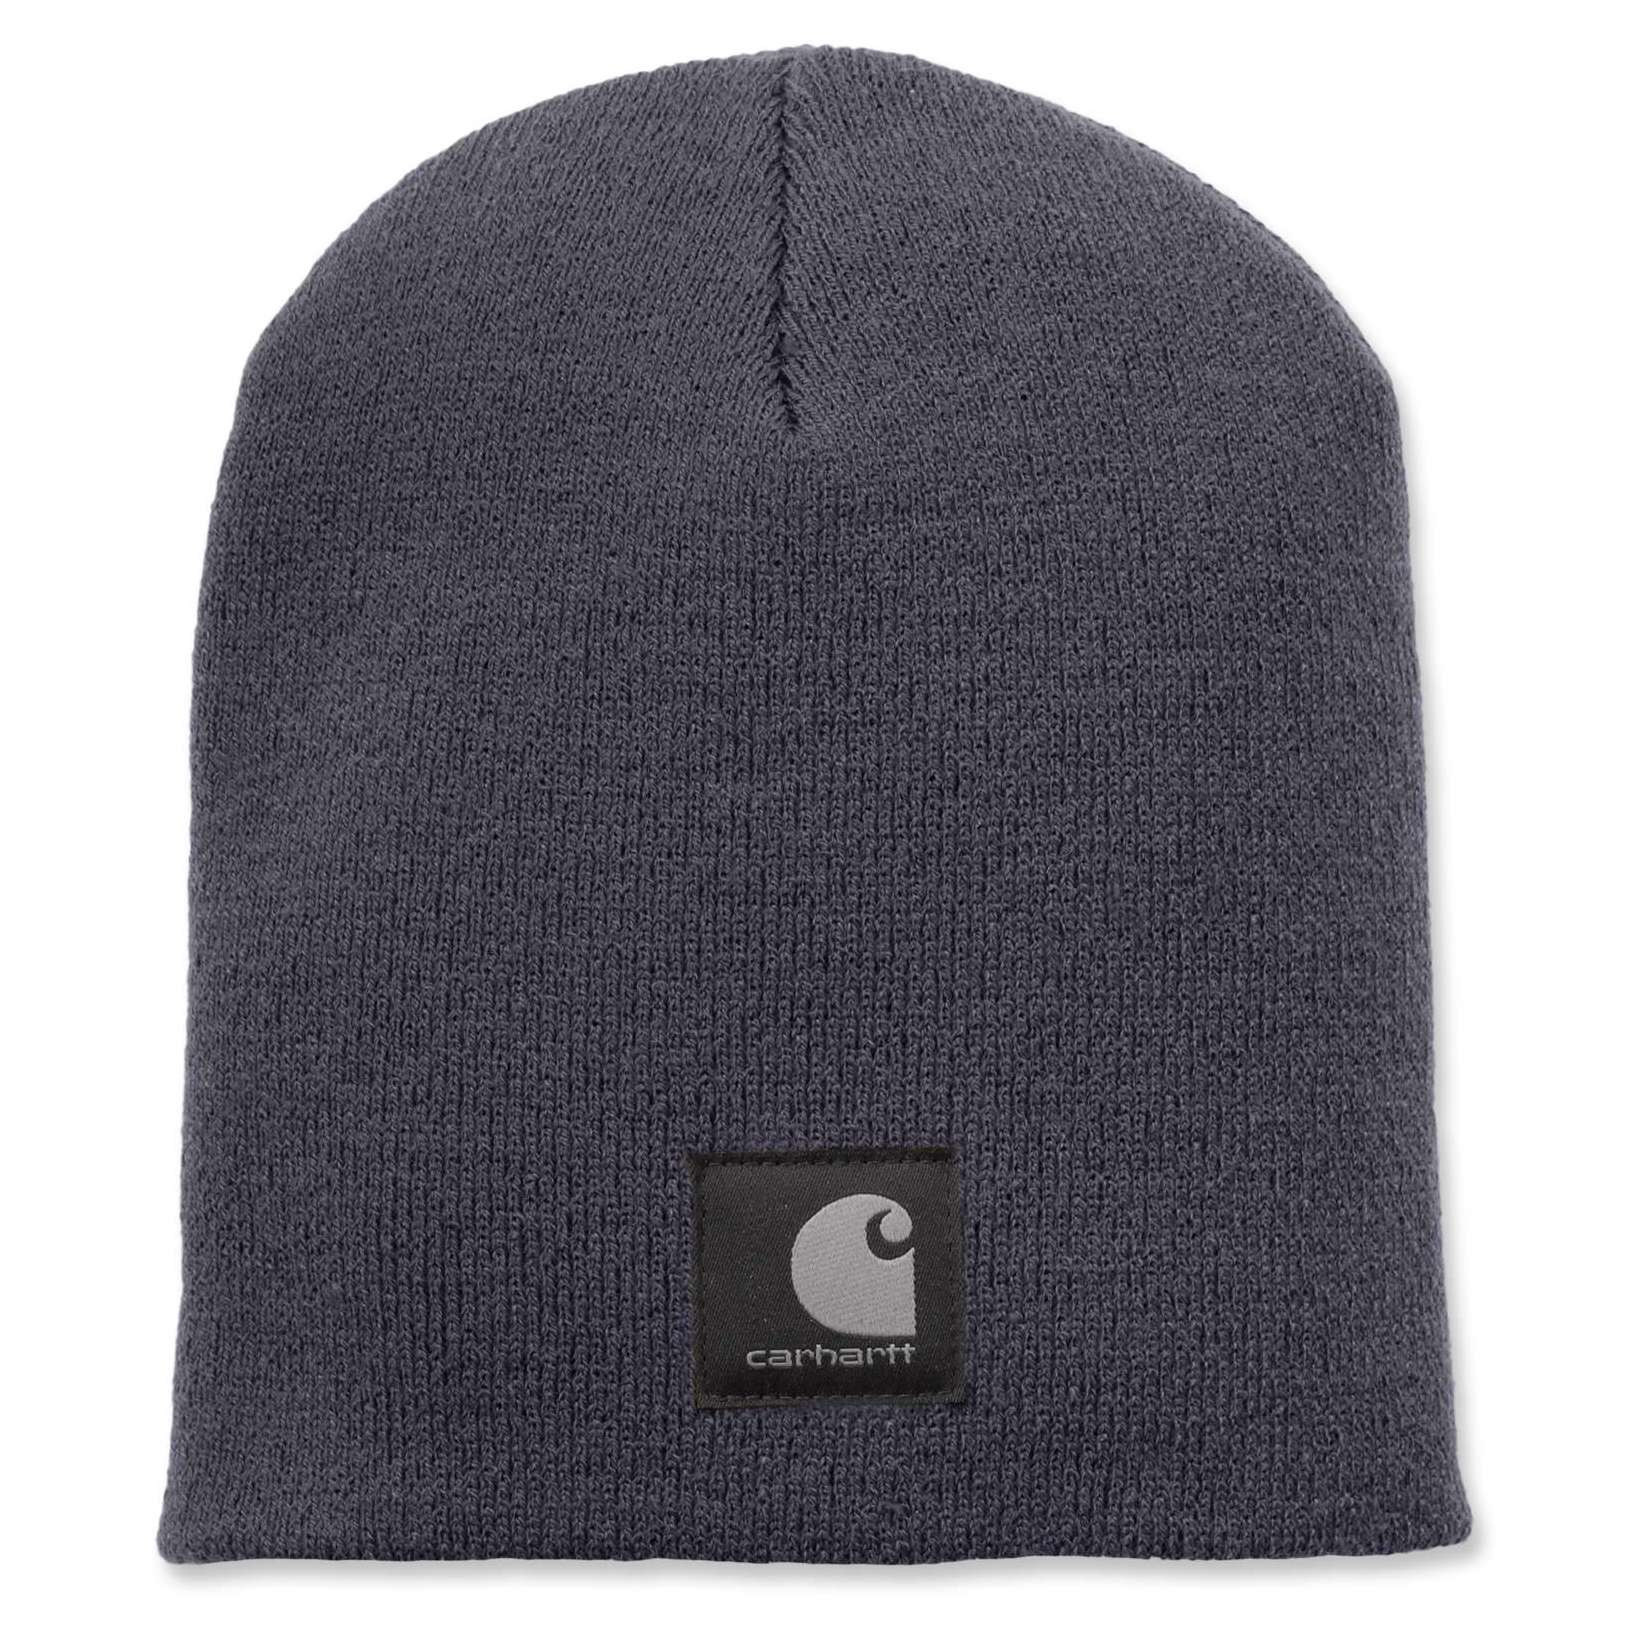 Шапка Carhartt Force Extremes Knit Hat - 103271 (Shadow, OFA)